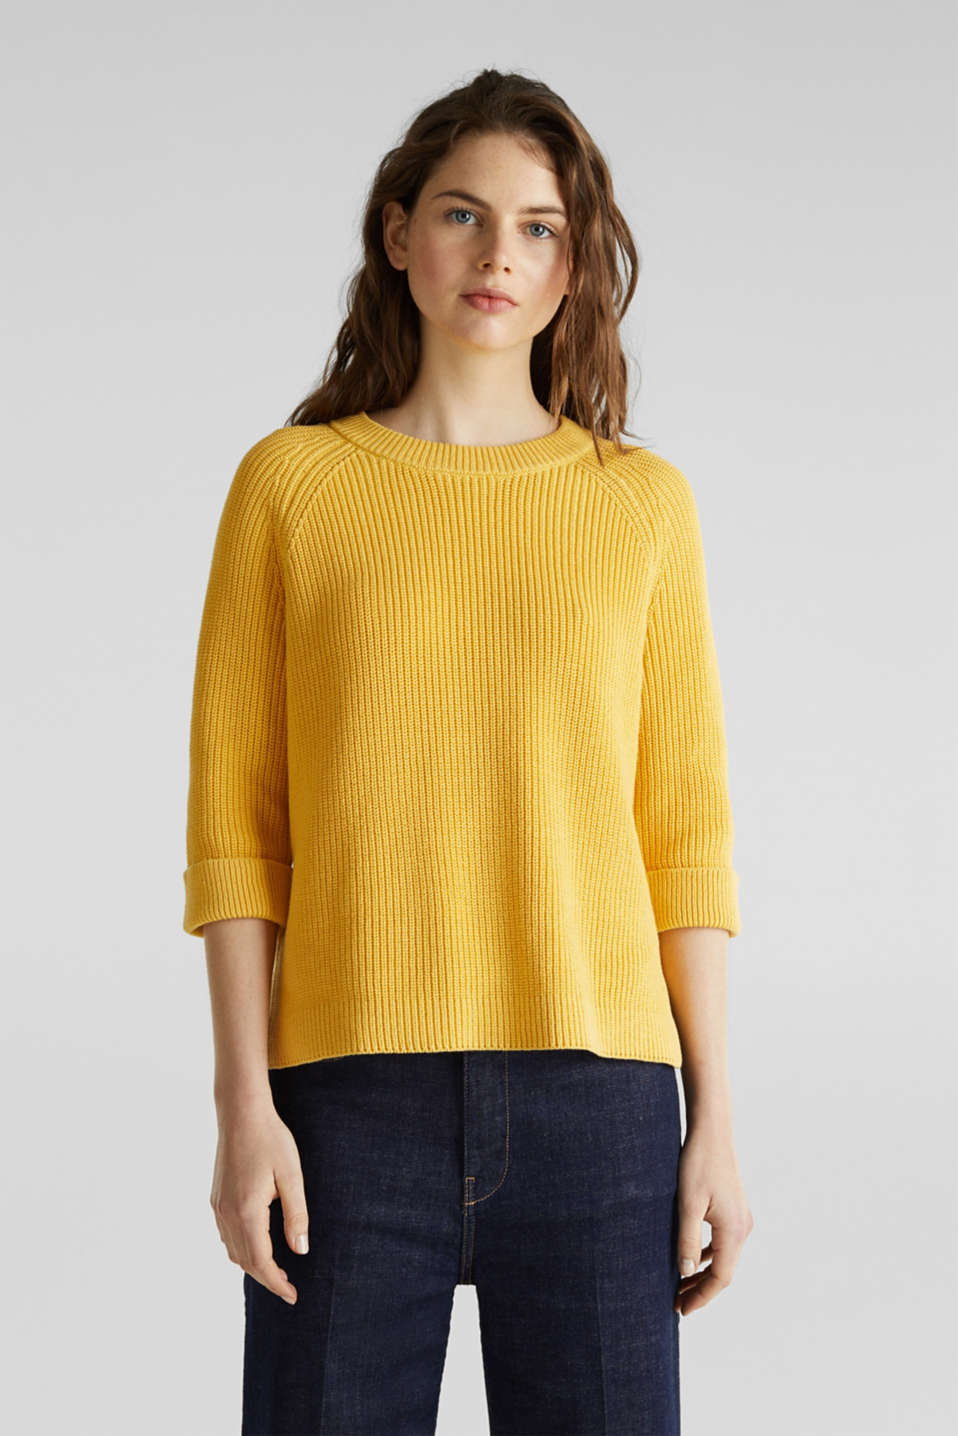 Jumper with a high-low hem, 100% cotton, YELLOW, detail image number 5